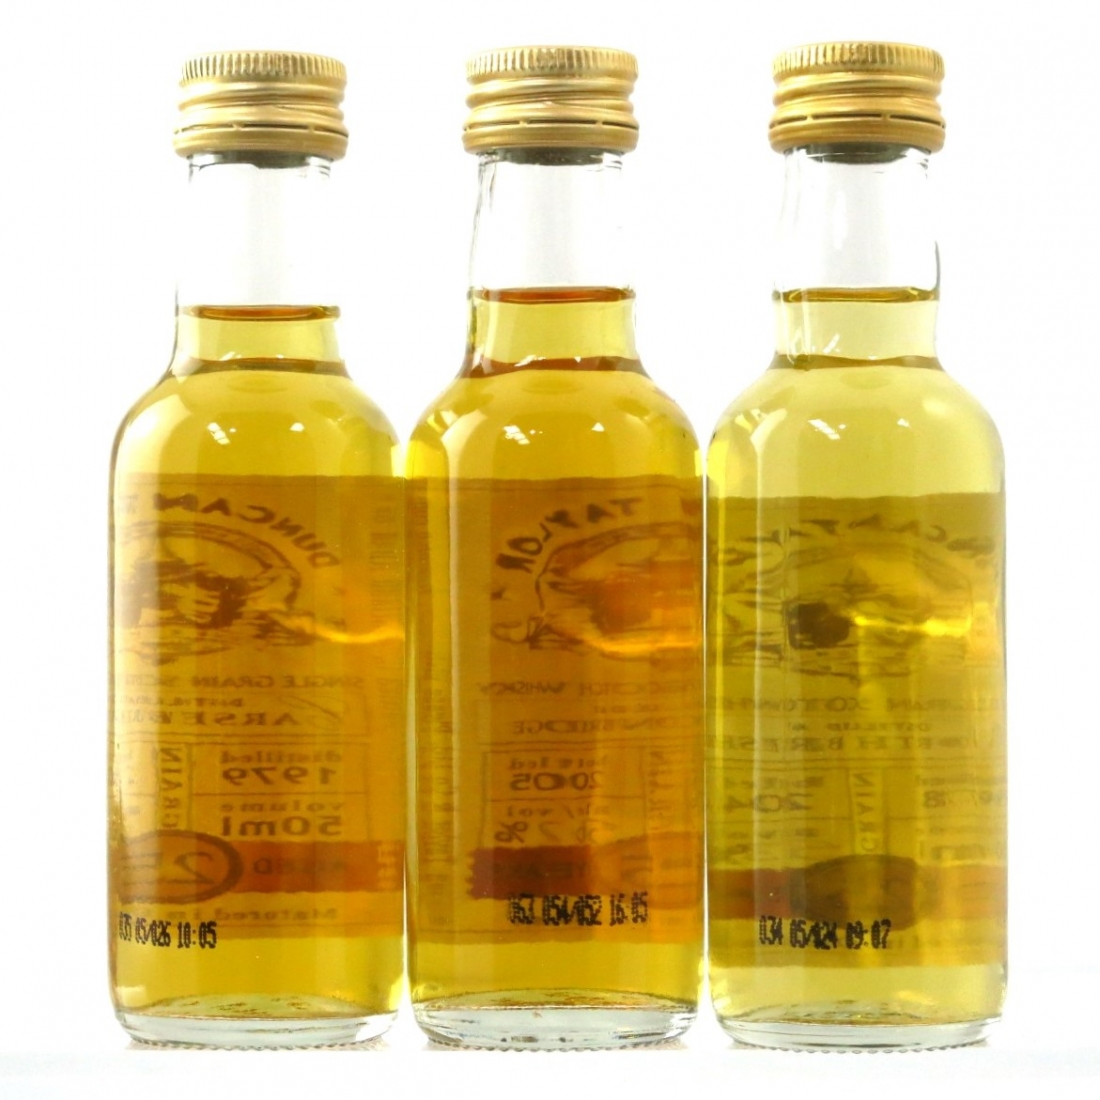 Duncan Taylor 25 Year Old Single Grain Selection 3 x 5cl